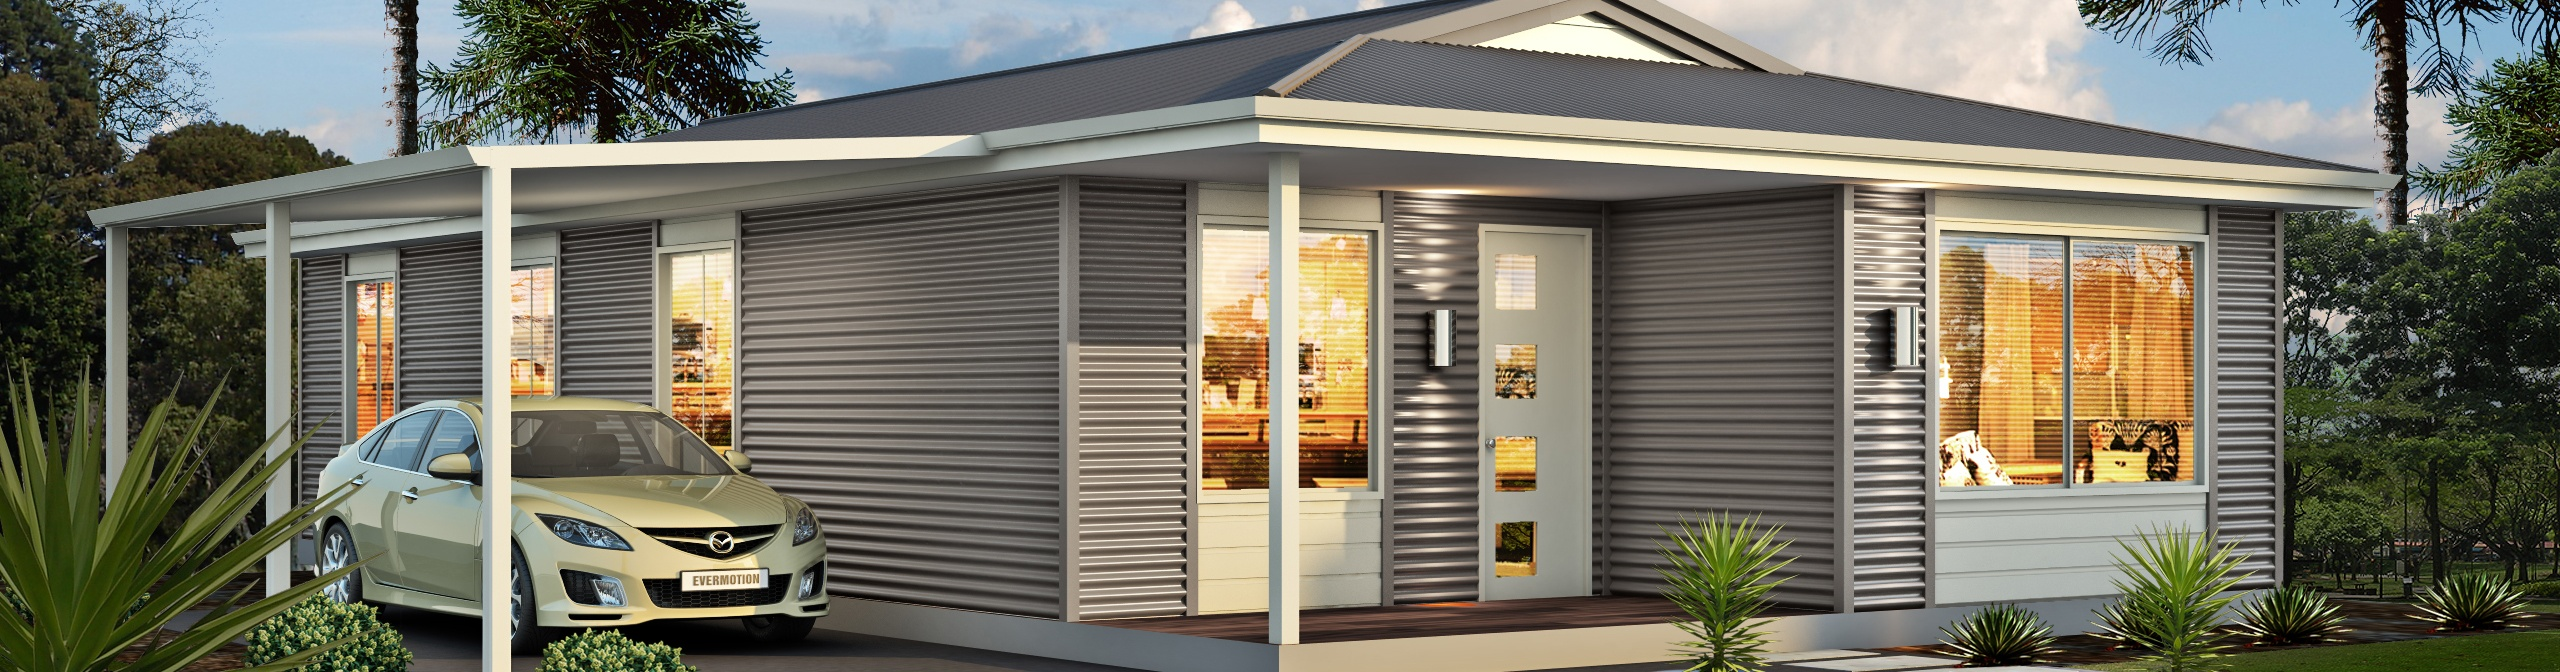 The Rocklea Home Design | Evoke Living Homes